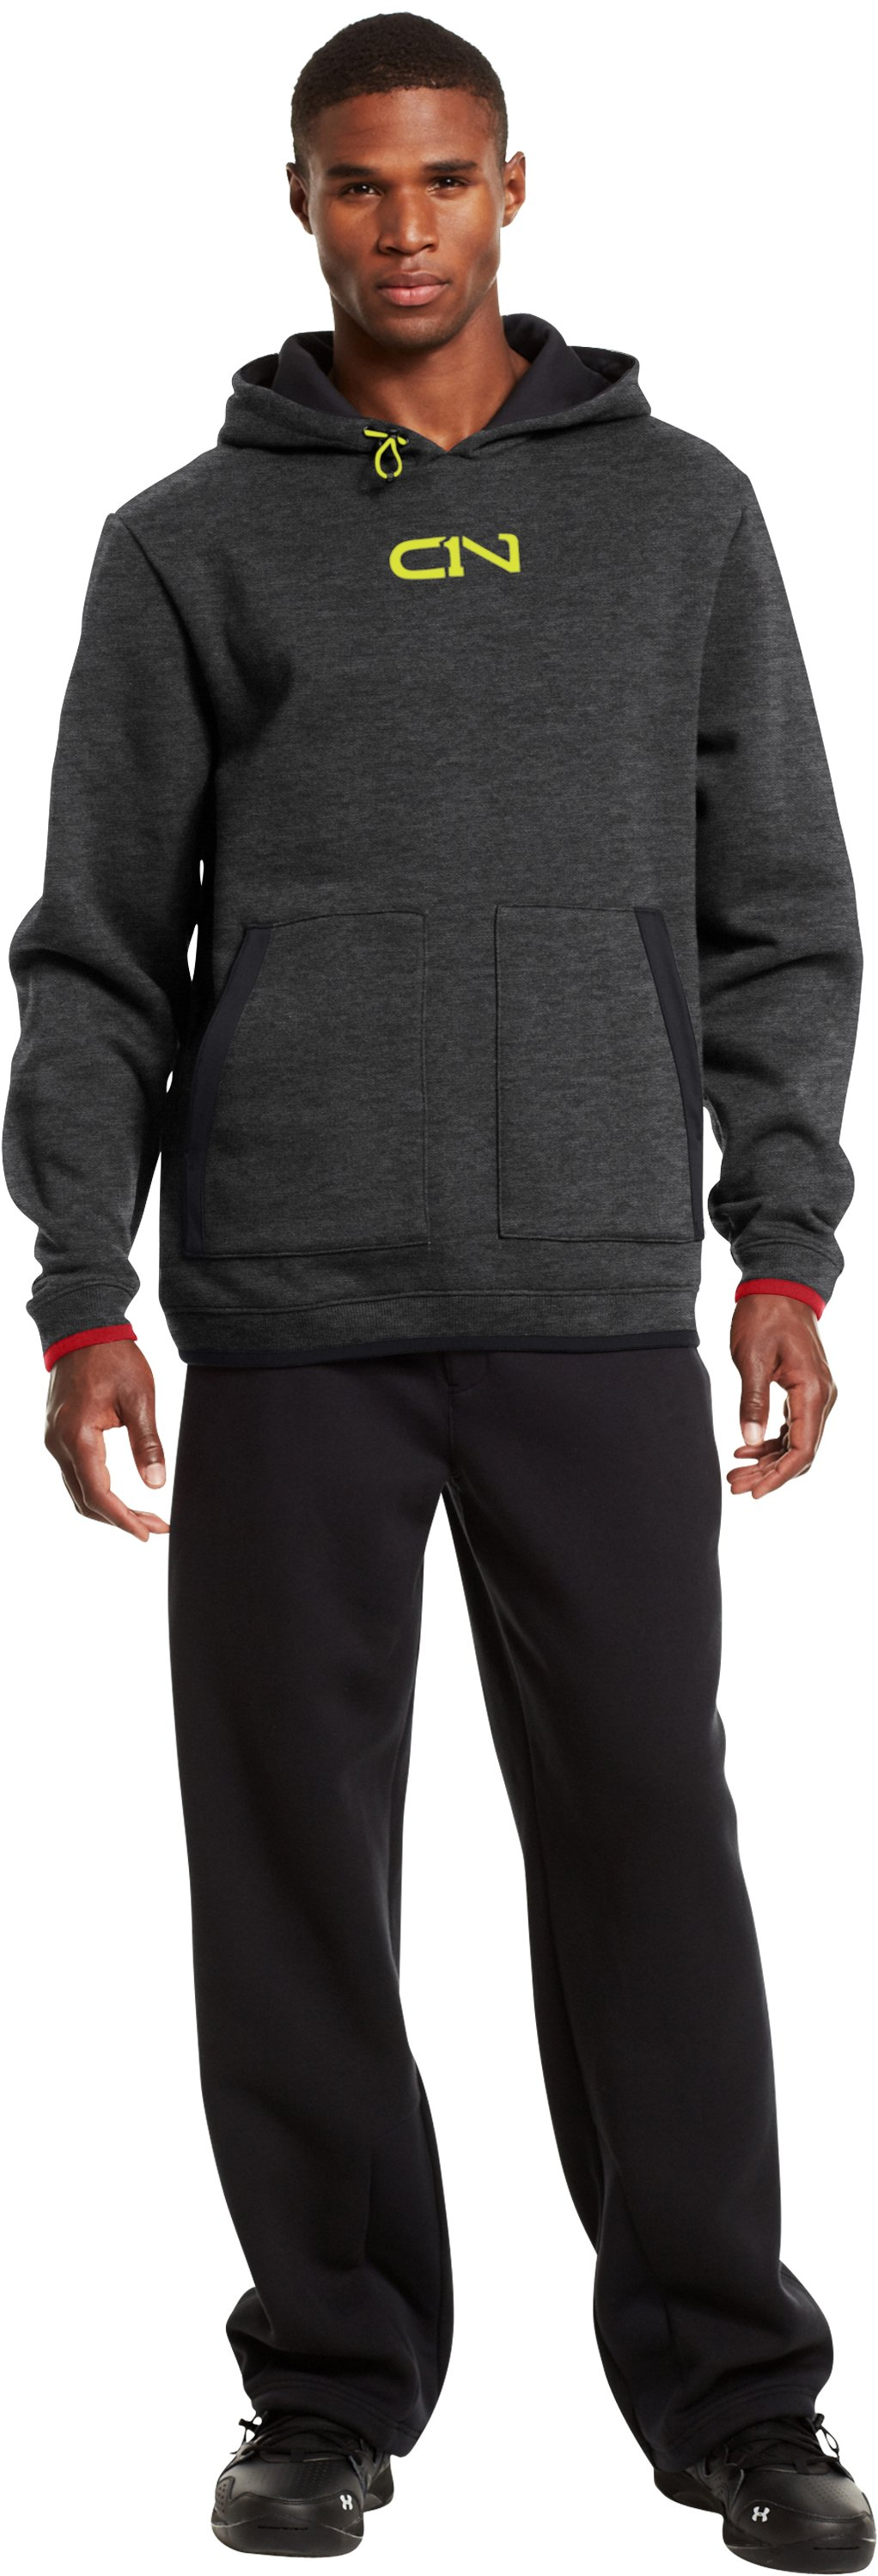 Men's C1N Charged Cotton® Storm Hoodie, Carbon Heather, zoomed image